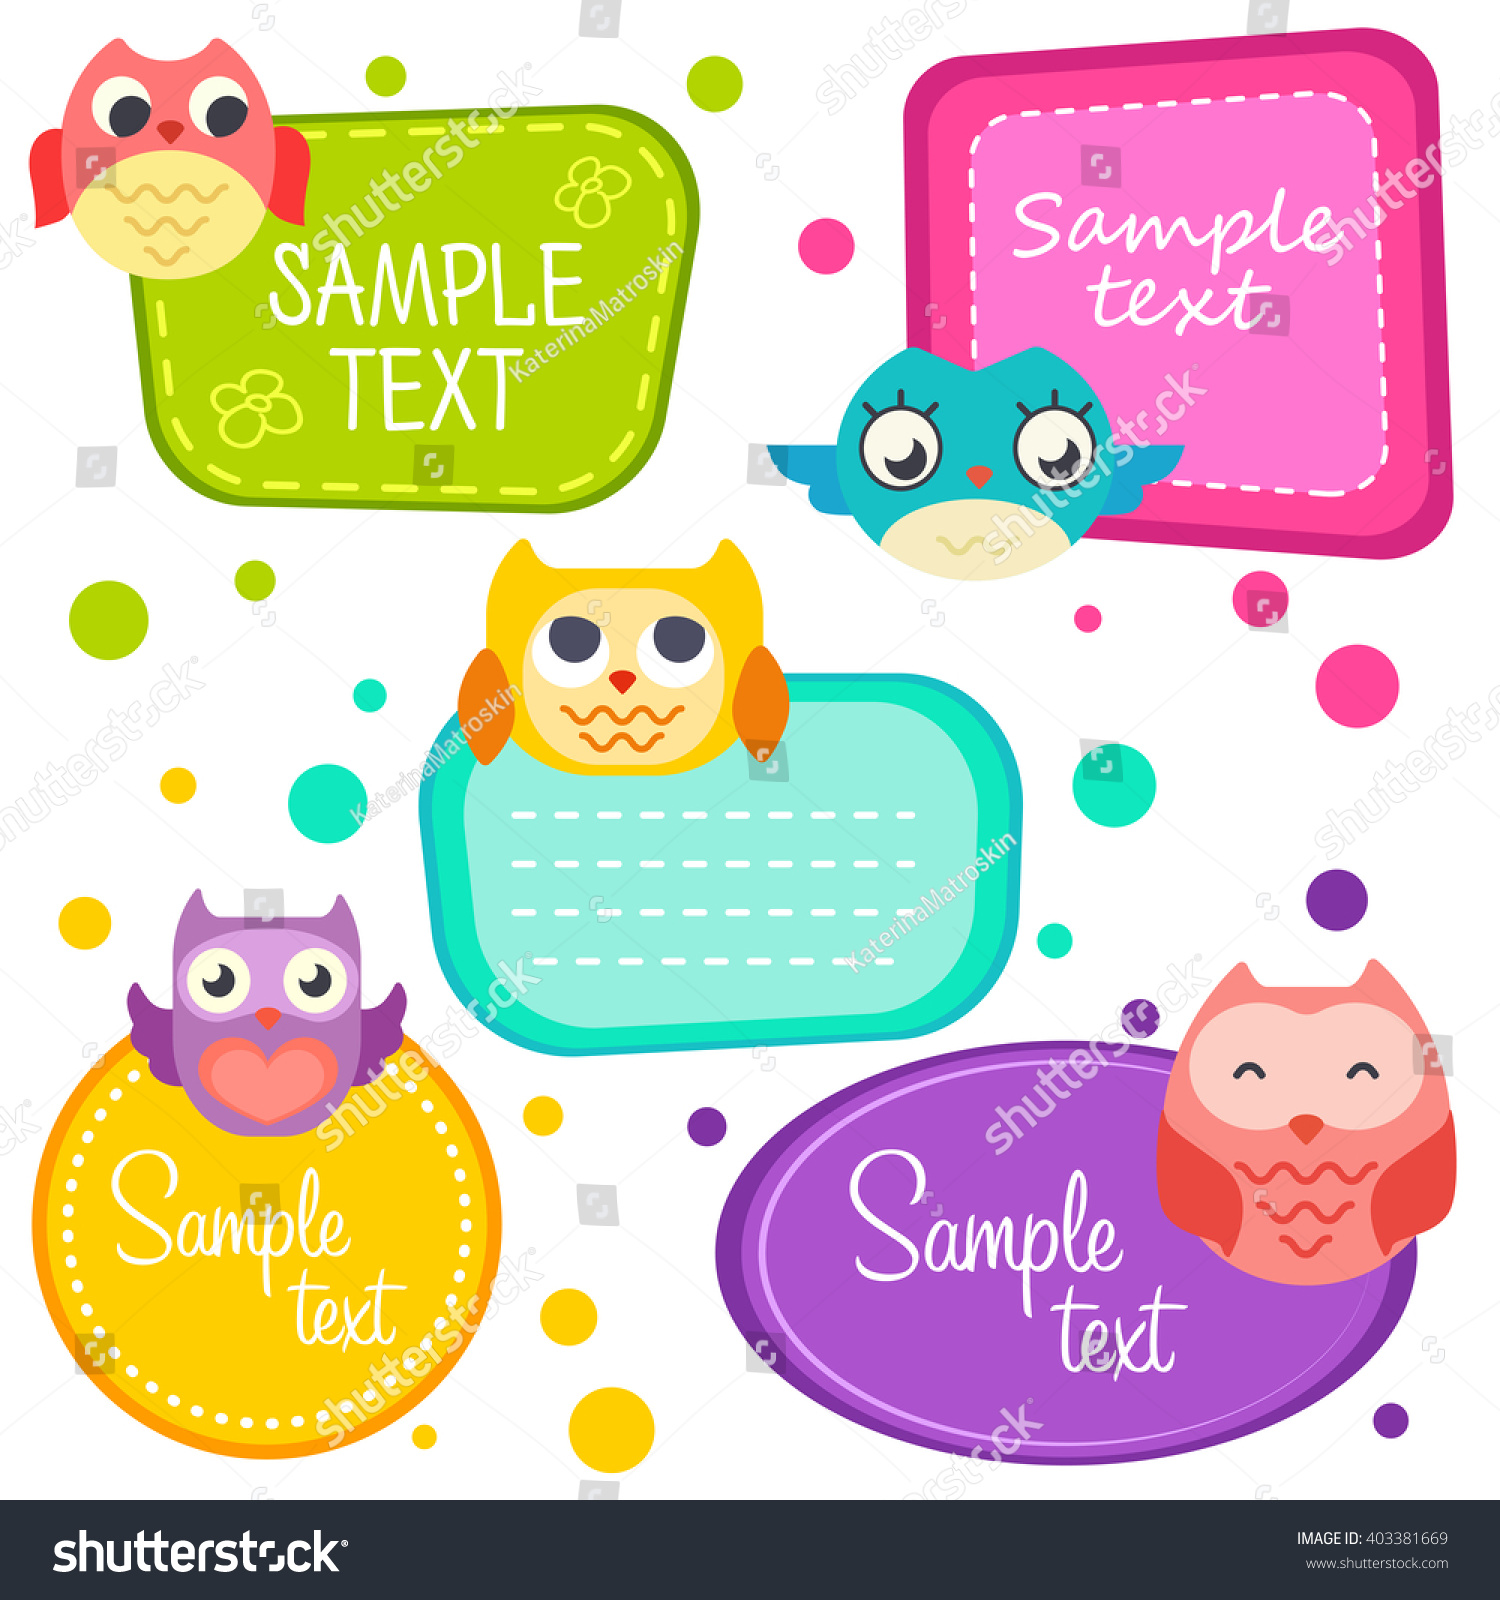 illustration cute cartoon owls set frame stock vector (royalty free